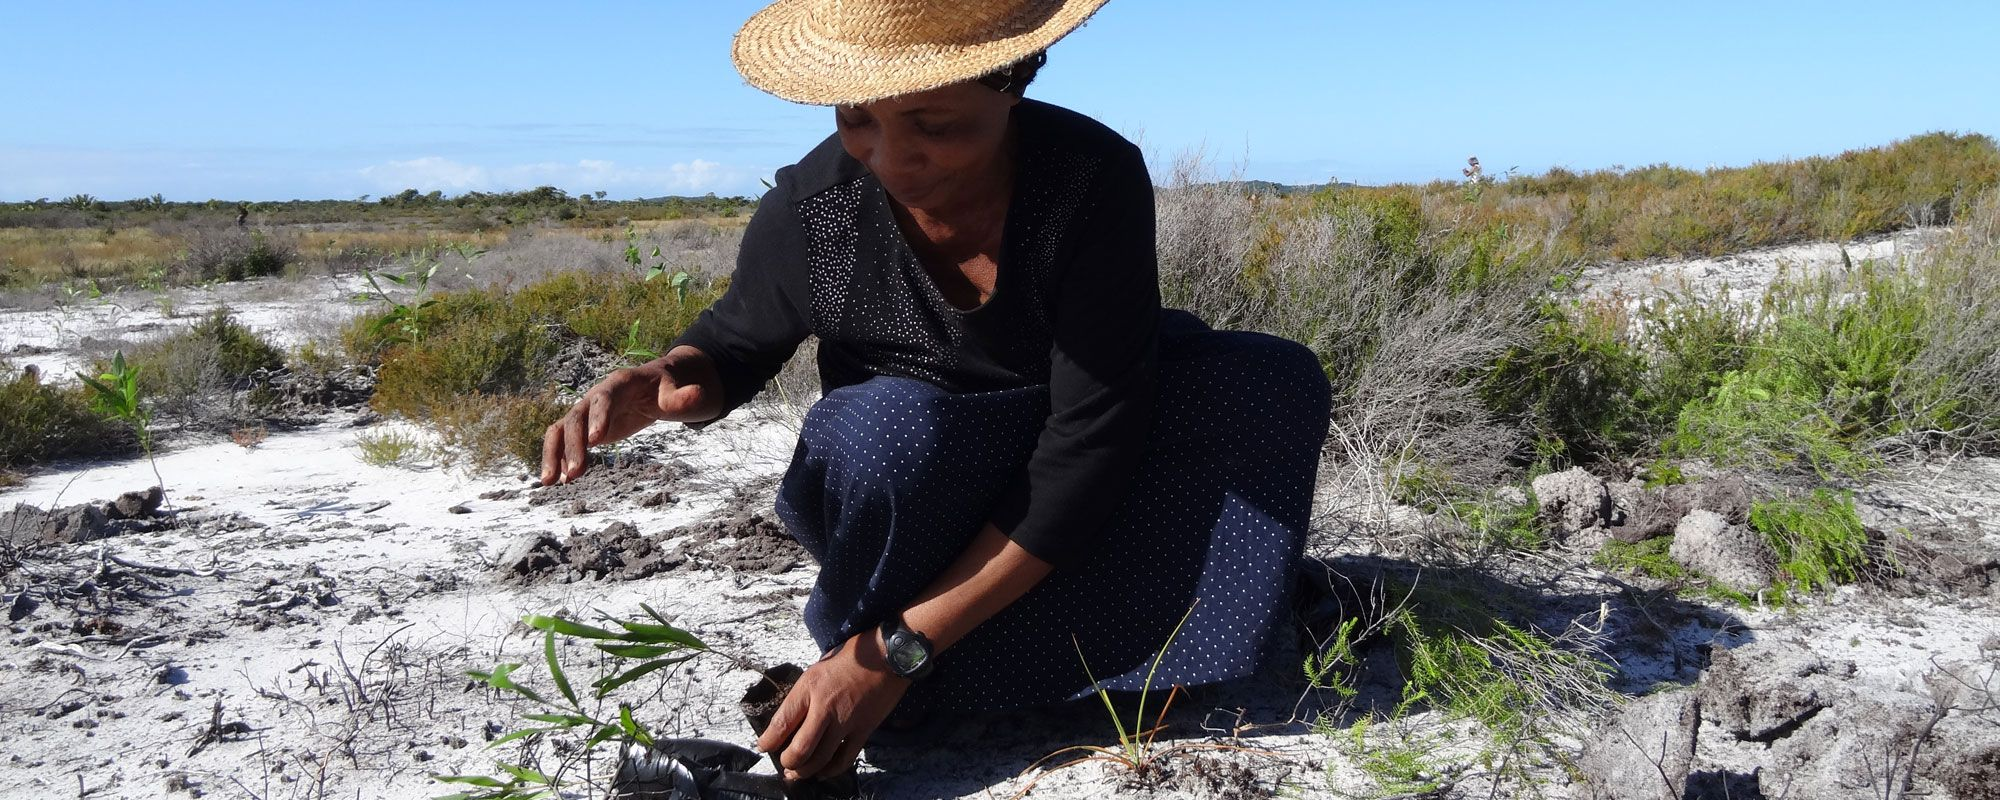 Planting trees for reforestation in the Anosy region of southeast Madagascar